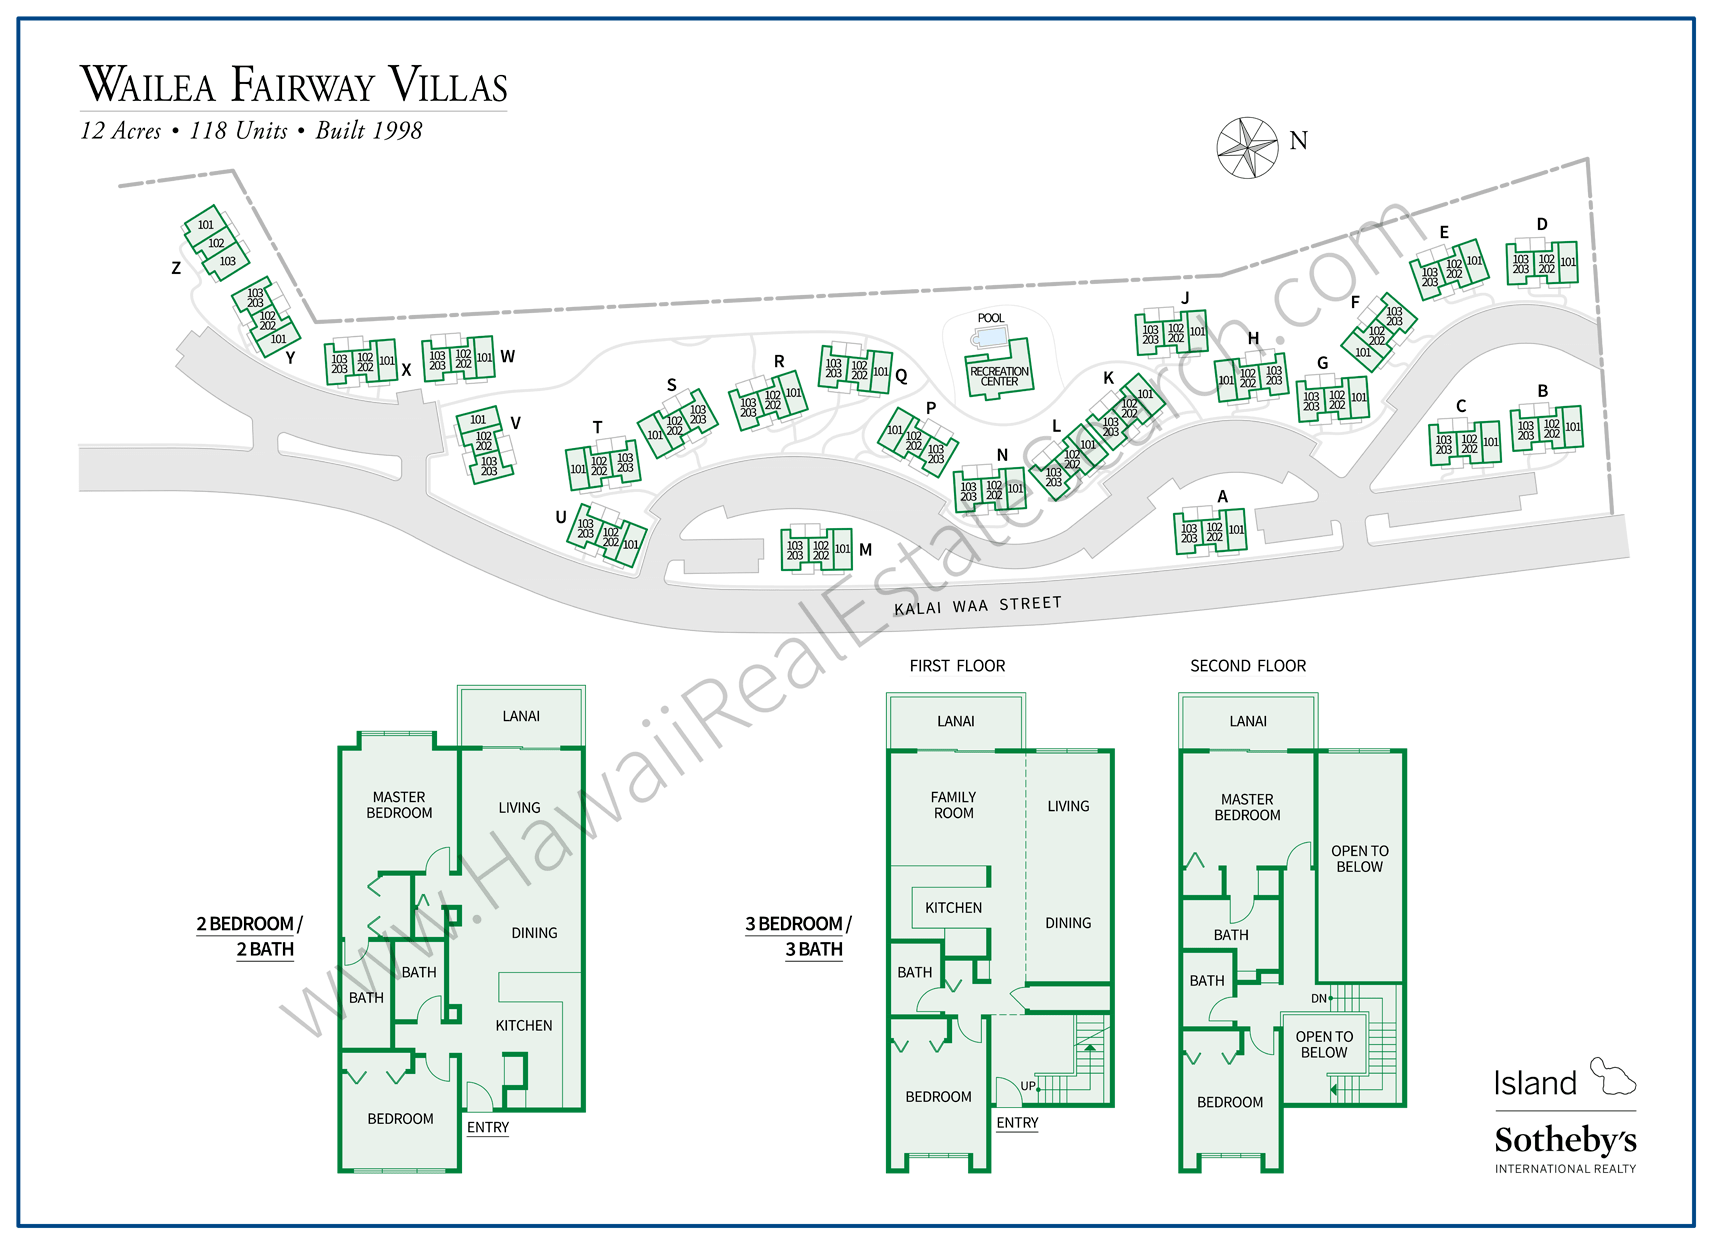 Wailea Fairway Villas Property Map